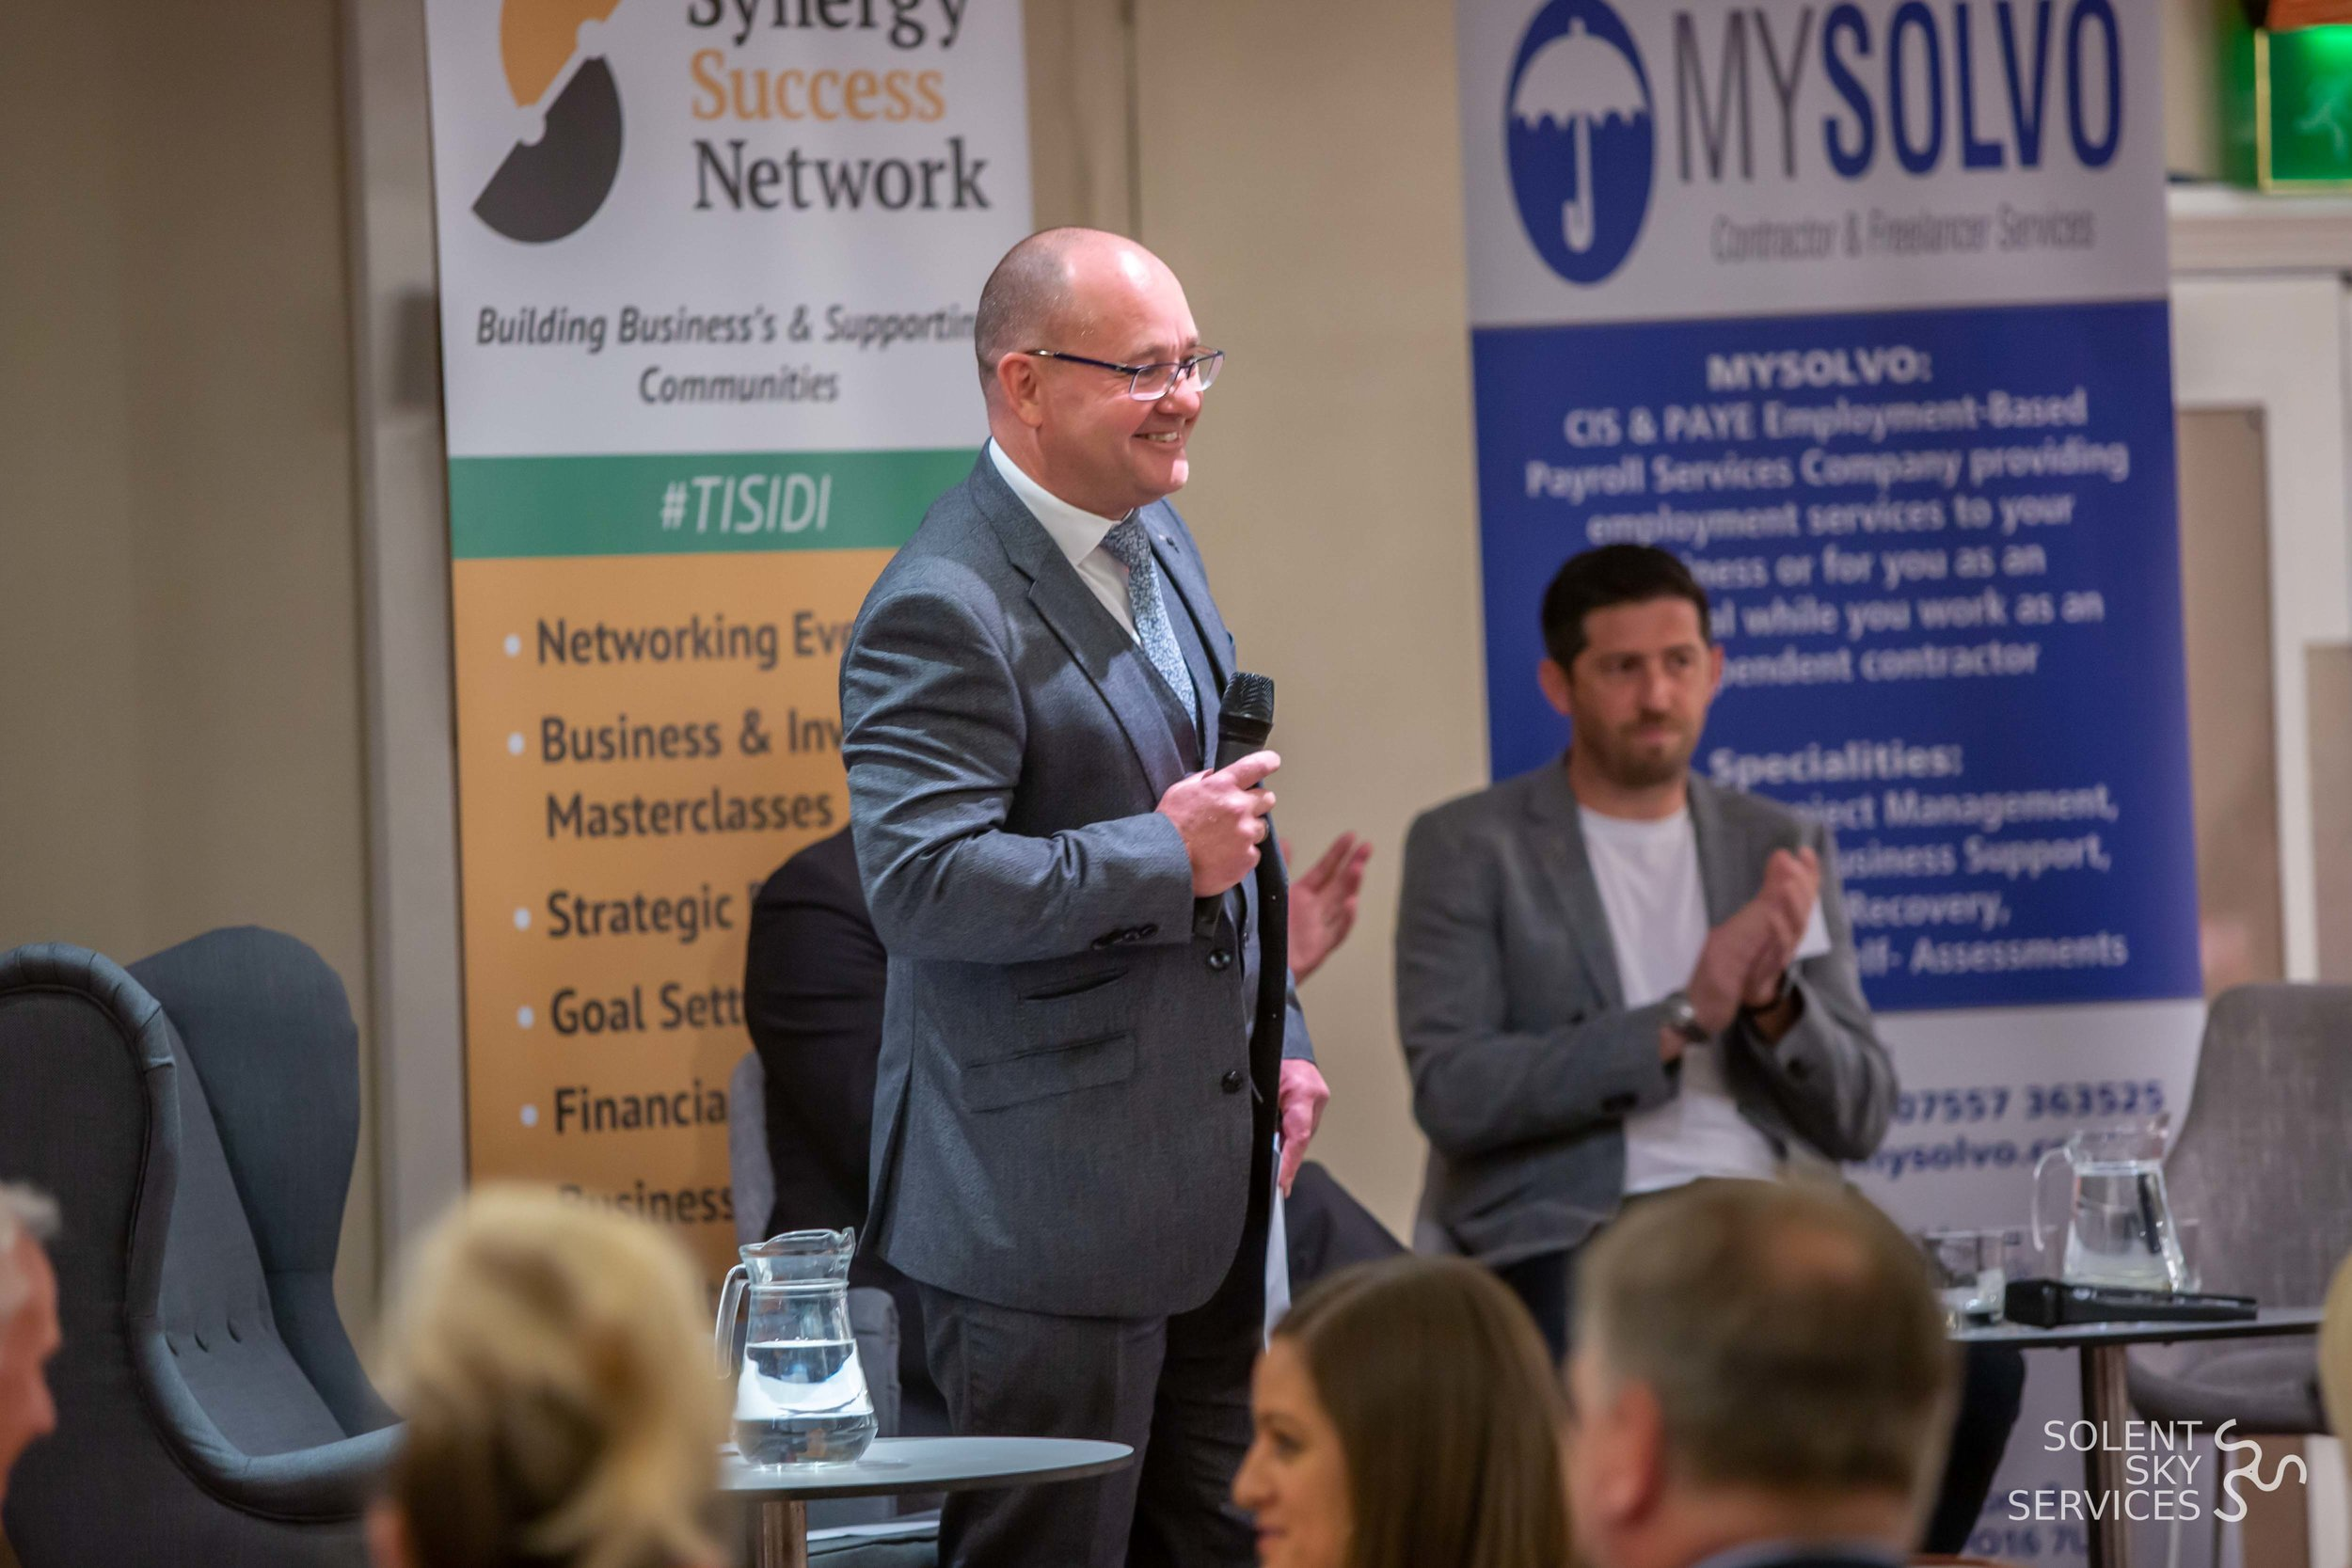 Synergy Success Networking Event #2 - Solent Sky Services-47.JPG